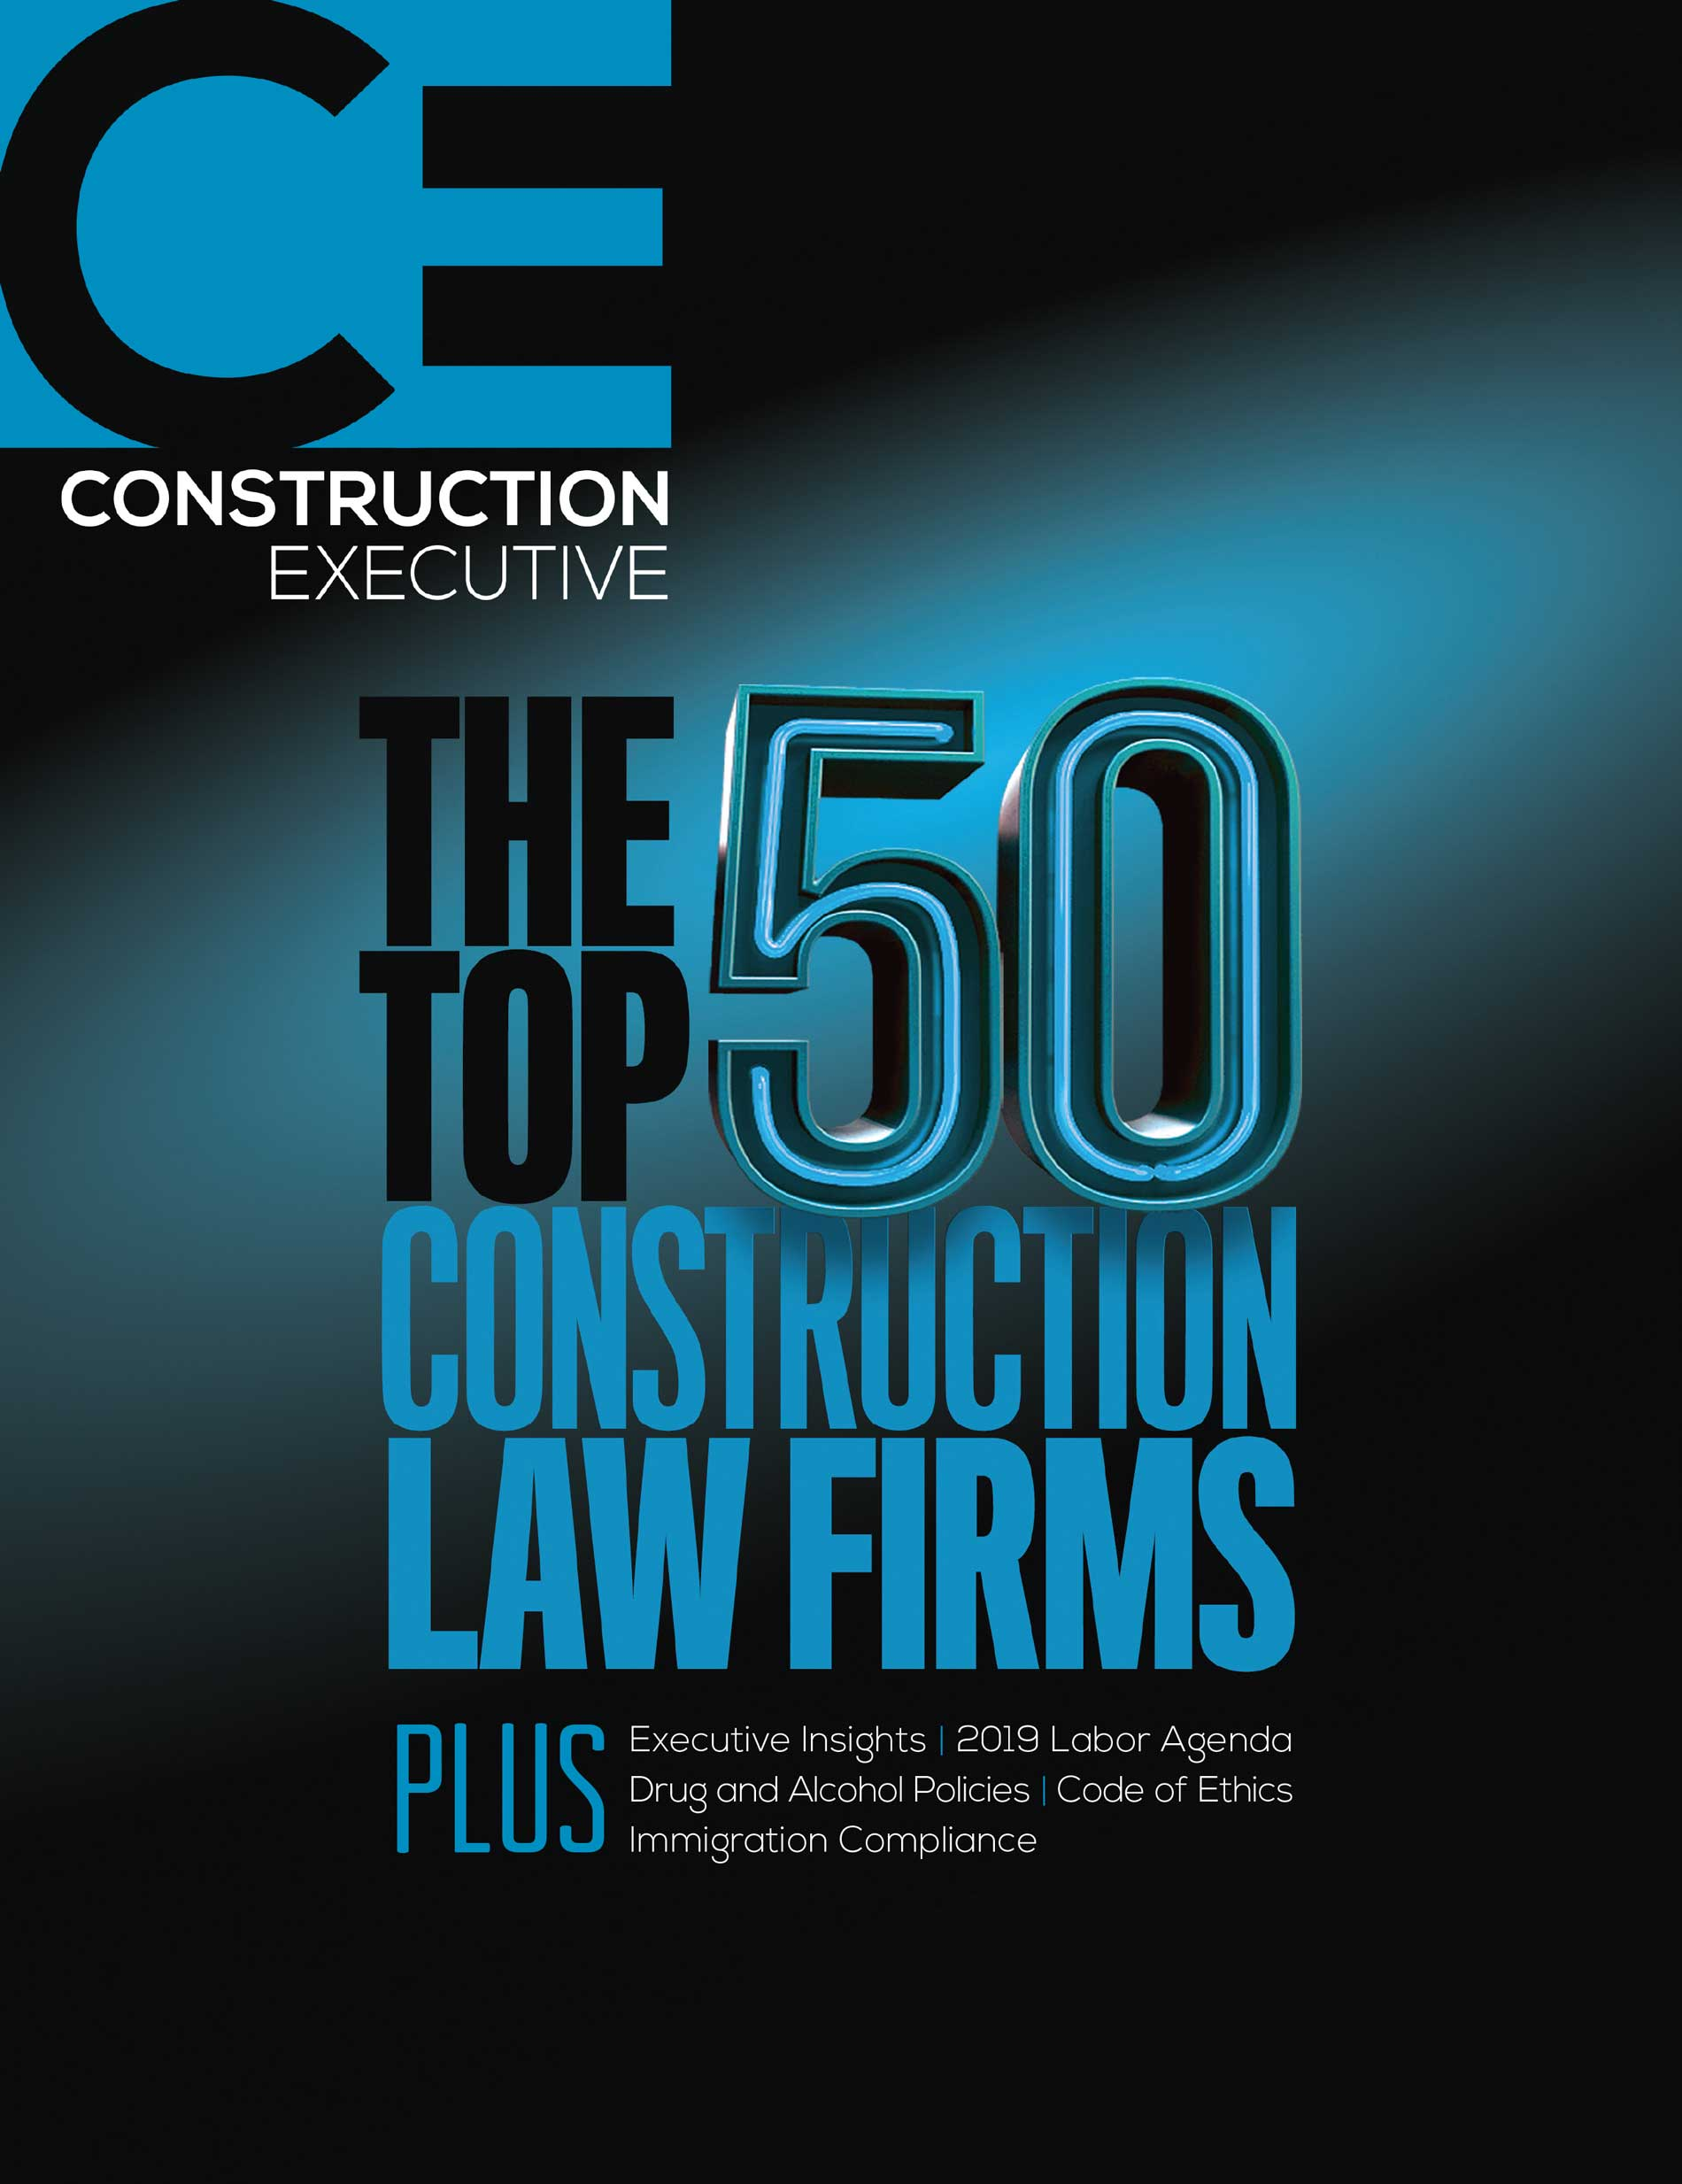 HPW Among the Elite In Construction Industry Law Firm Rankings